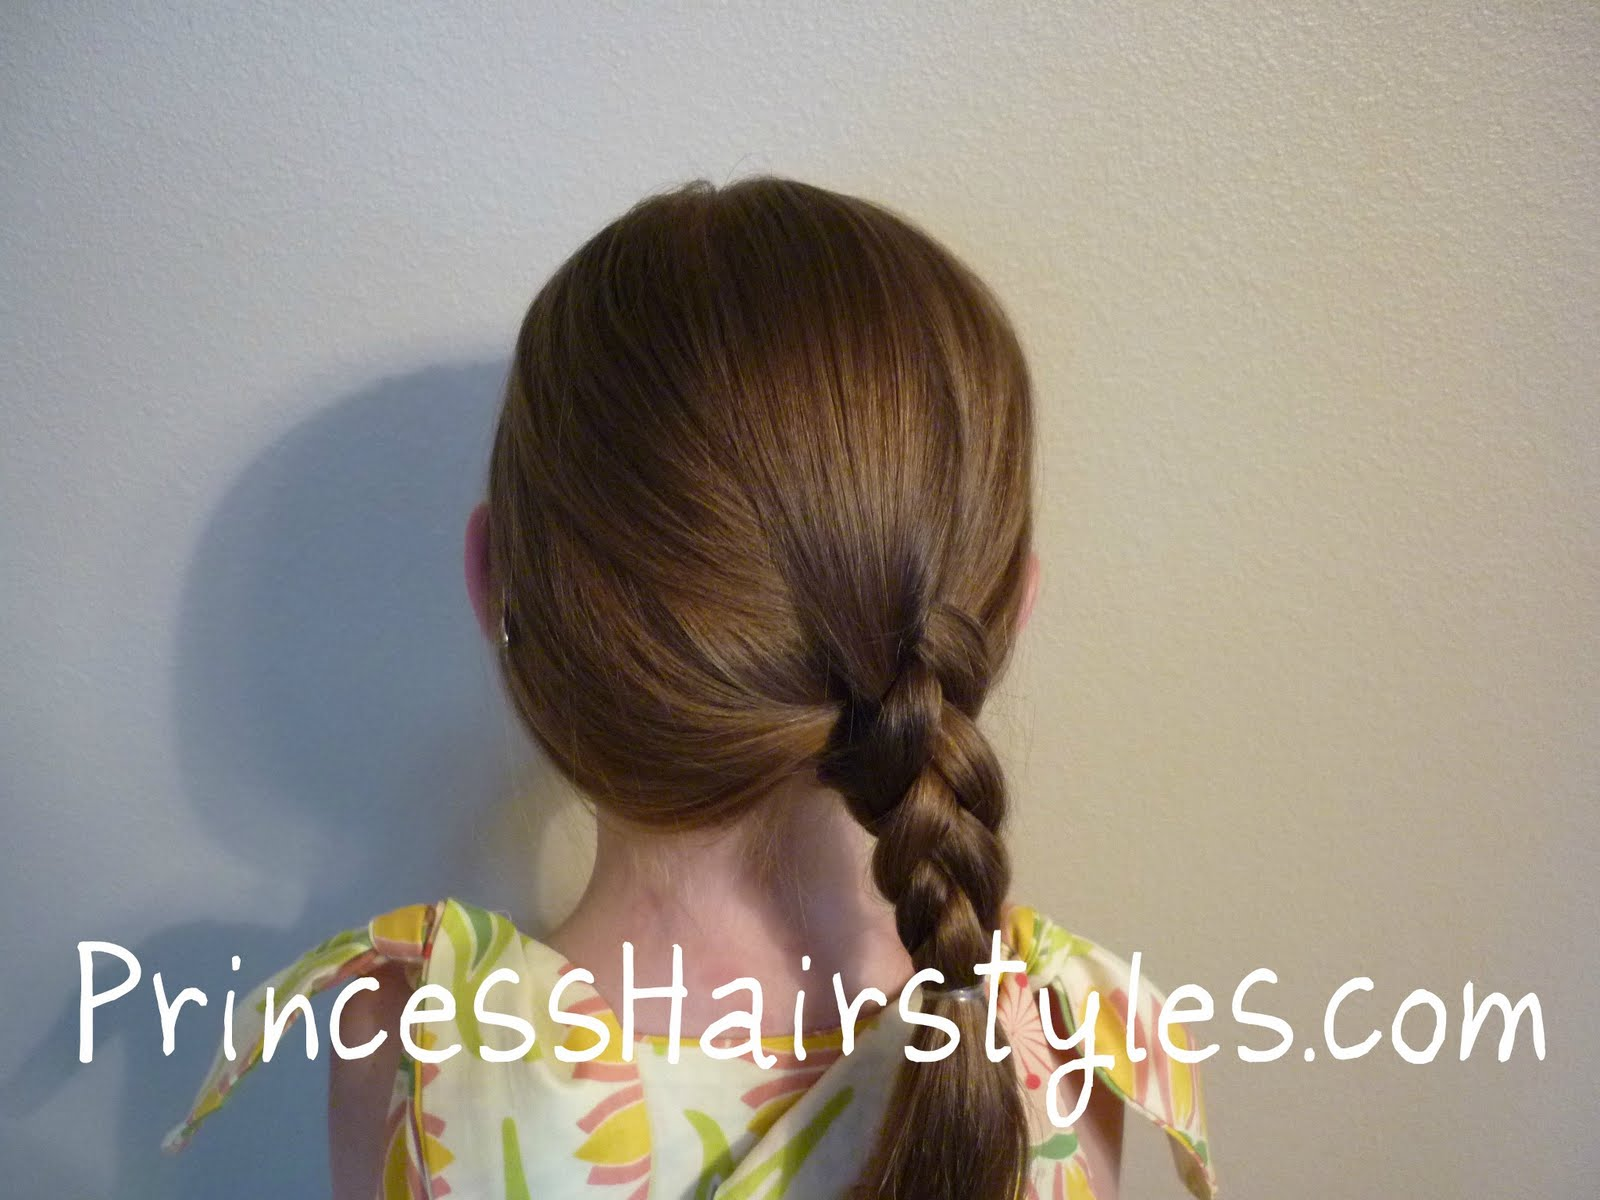 Hair Style 3d Image: Hairstyles For Girls